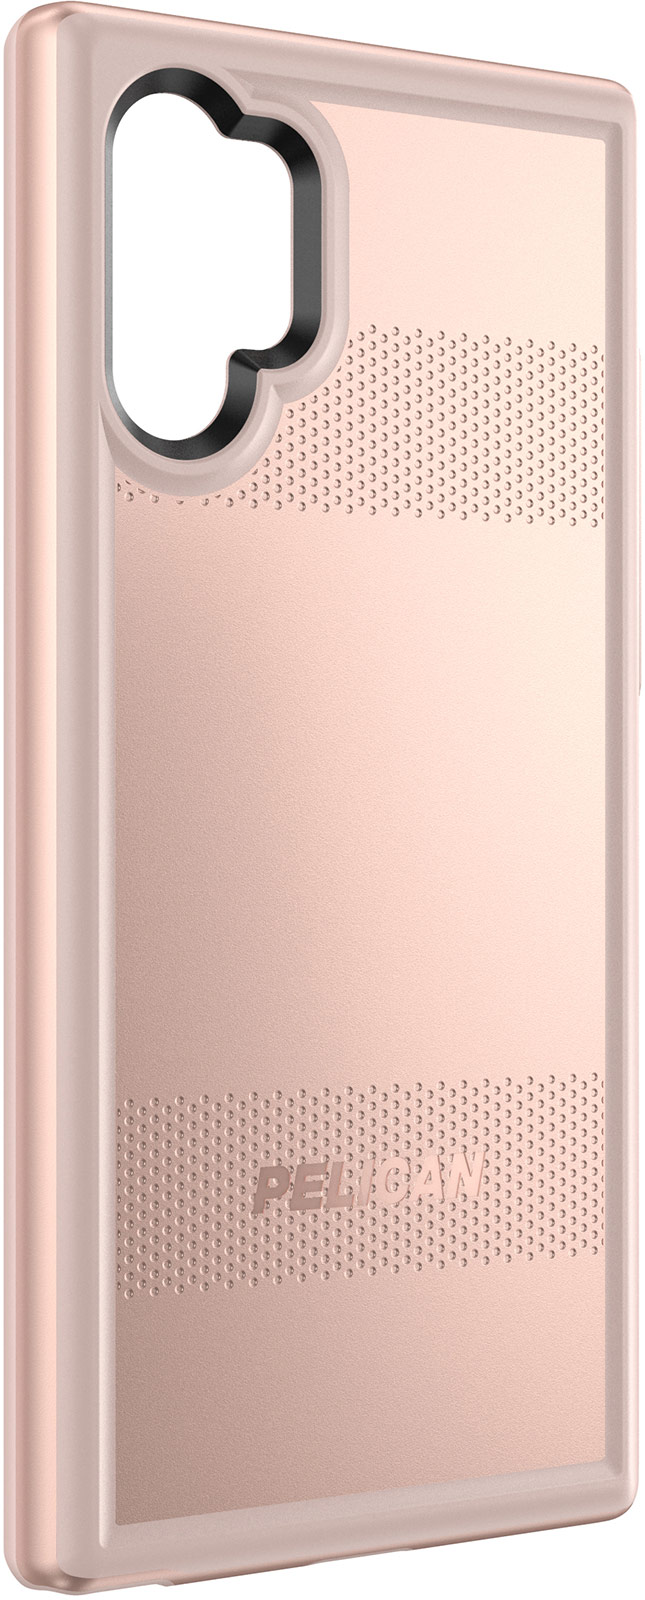 pelican galaxy note 10 plus protector rose gold phone case